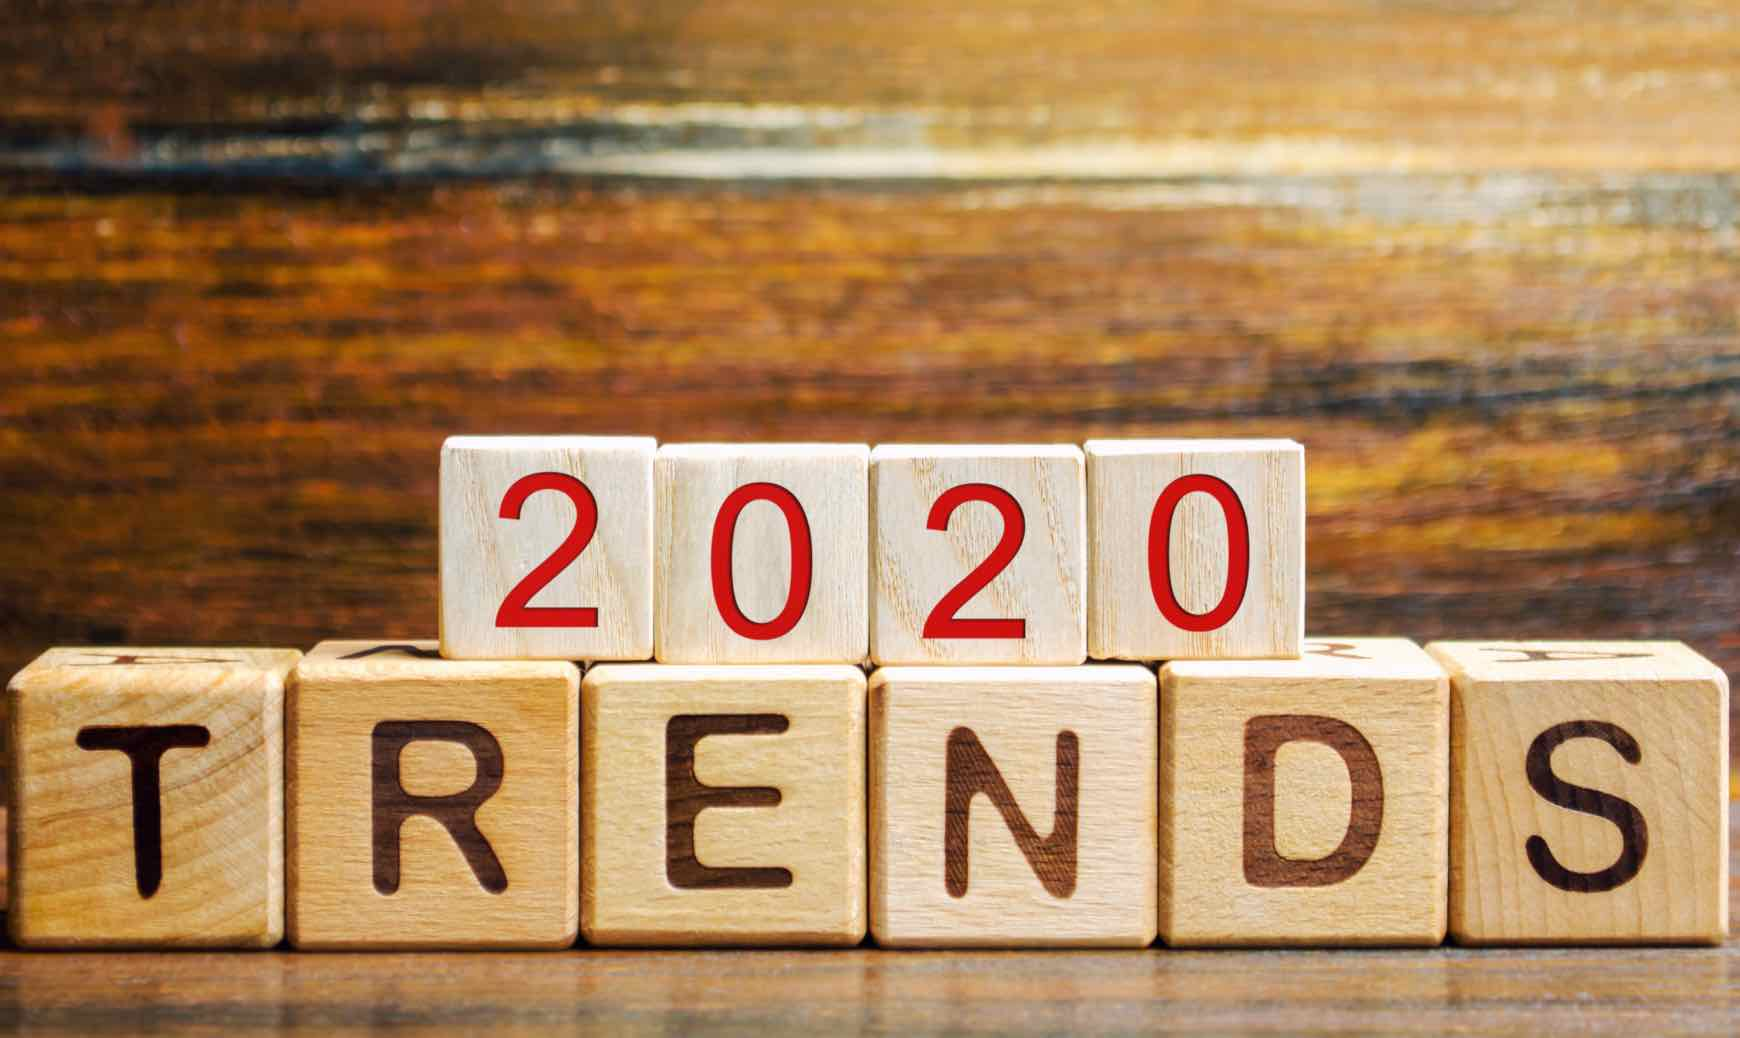 2020 digital trends